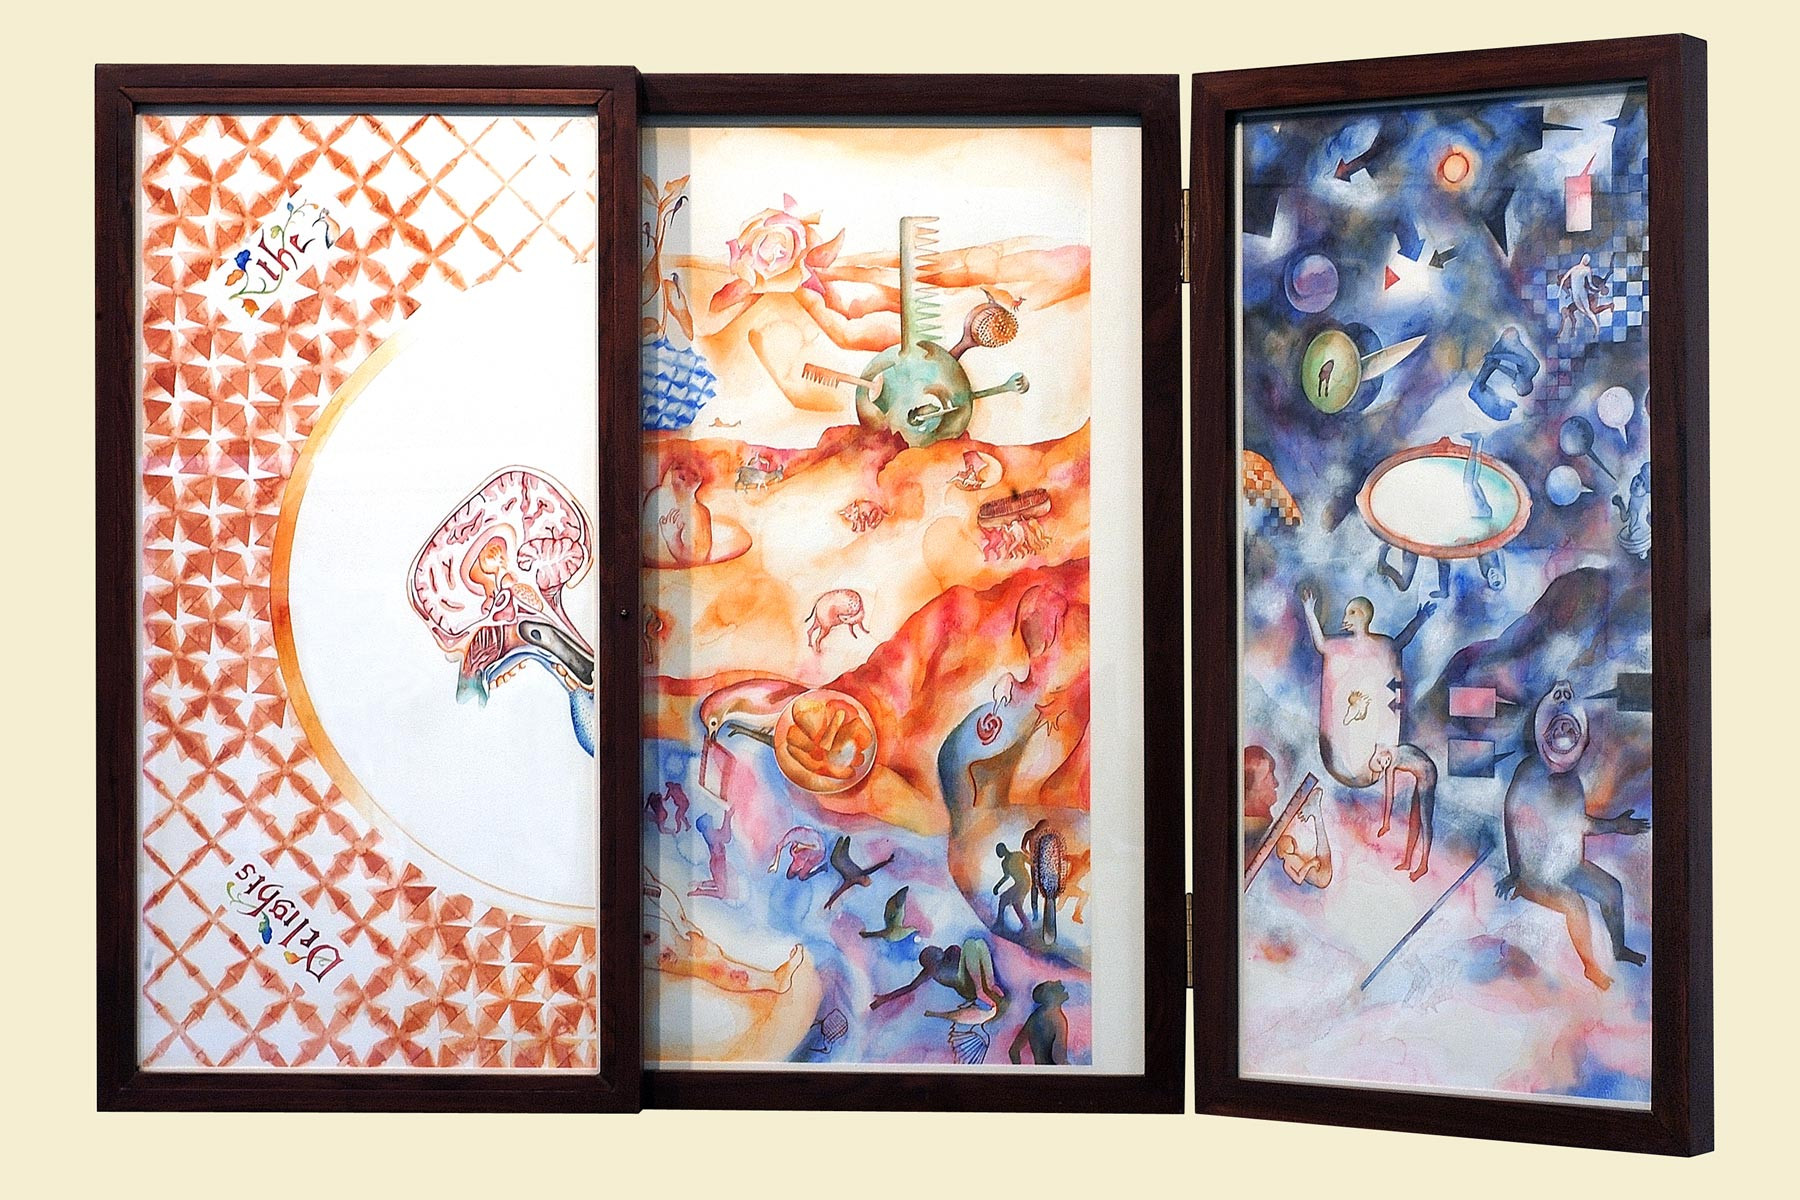 The Garden of Delights (triptych). Right door open to reveal the triptych inside.